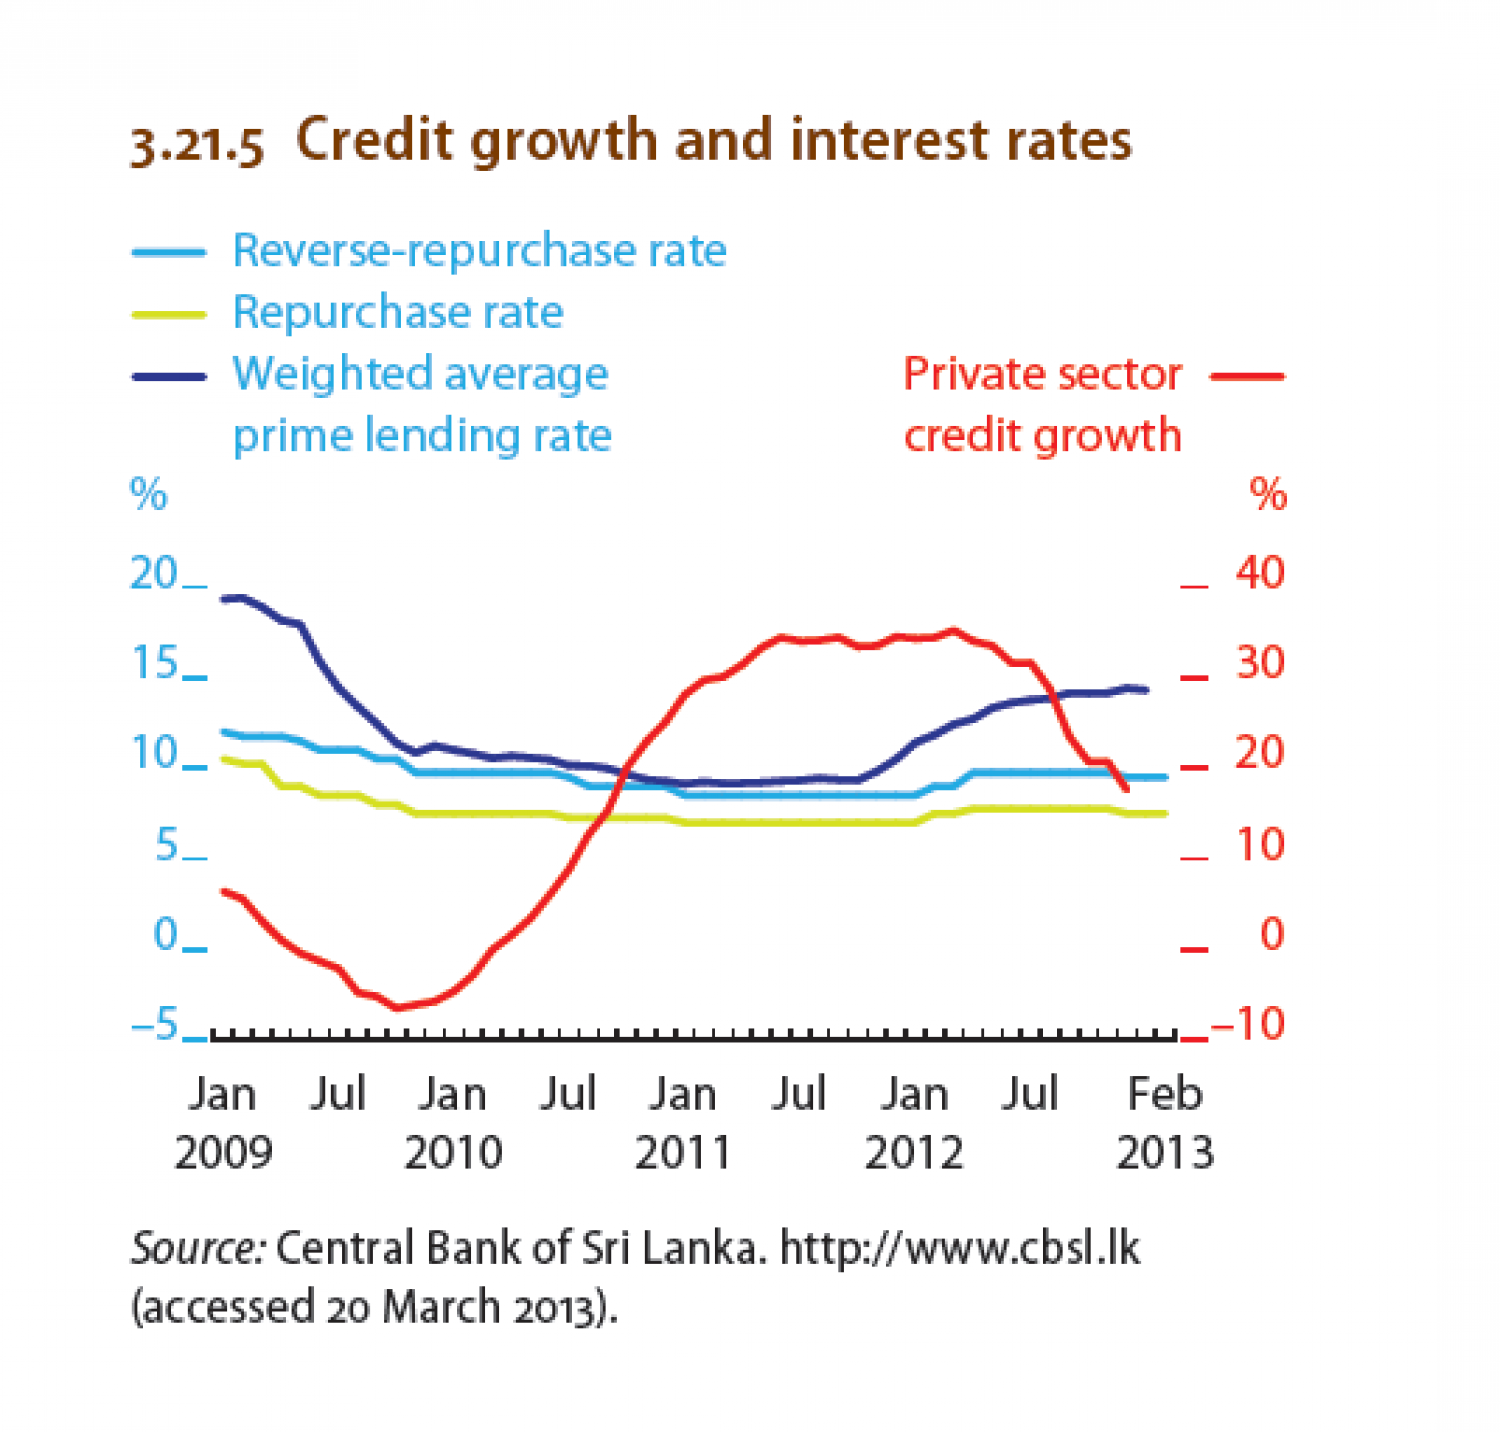 Sri Lanka - Credit growth and interest rates Infographic